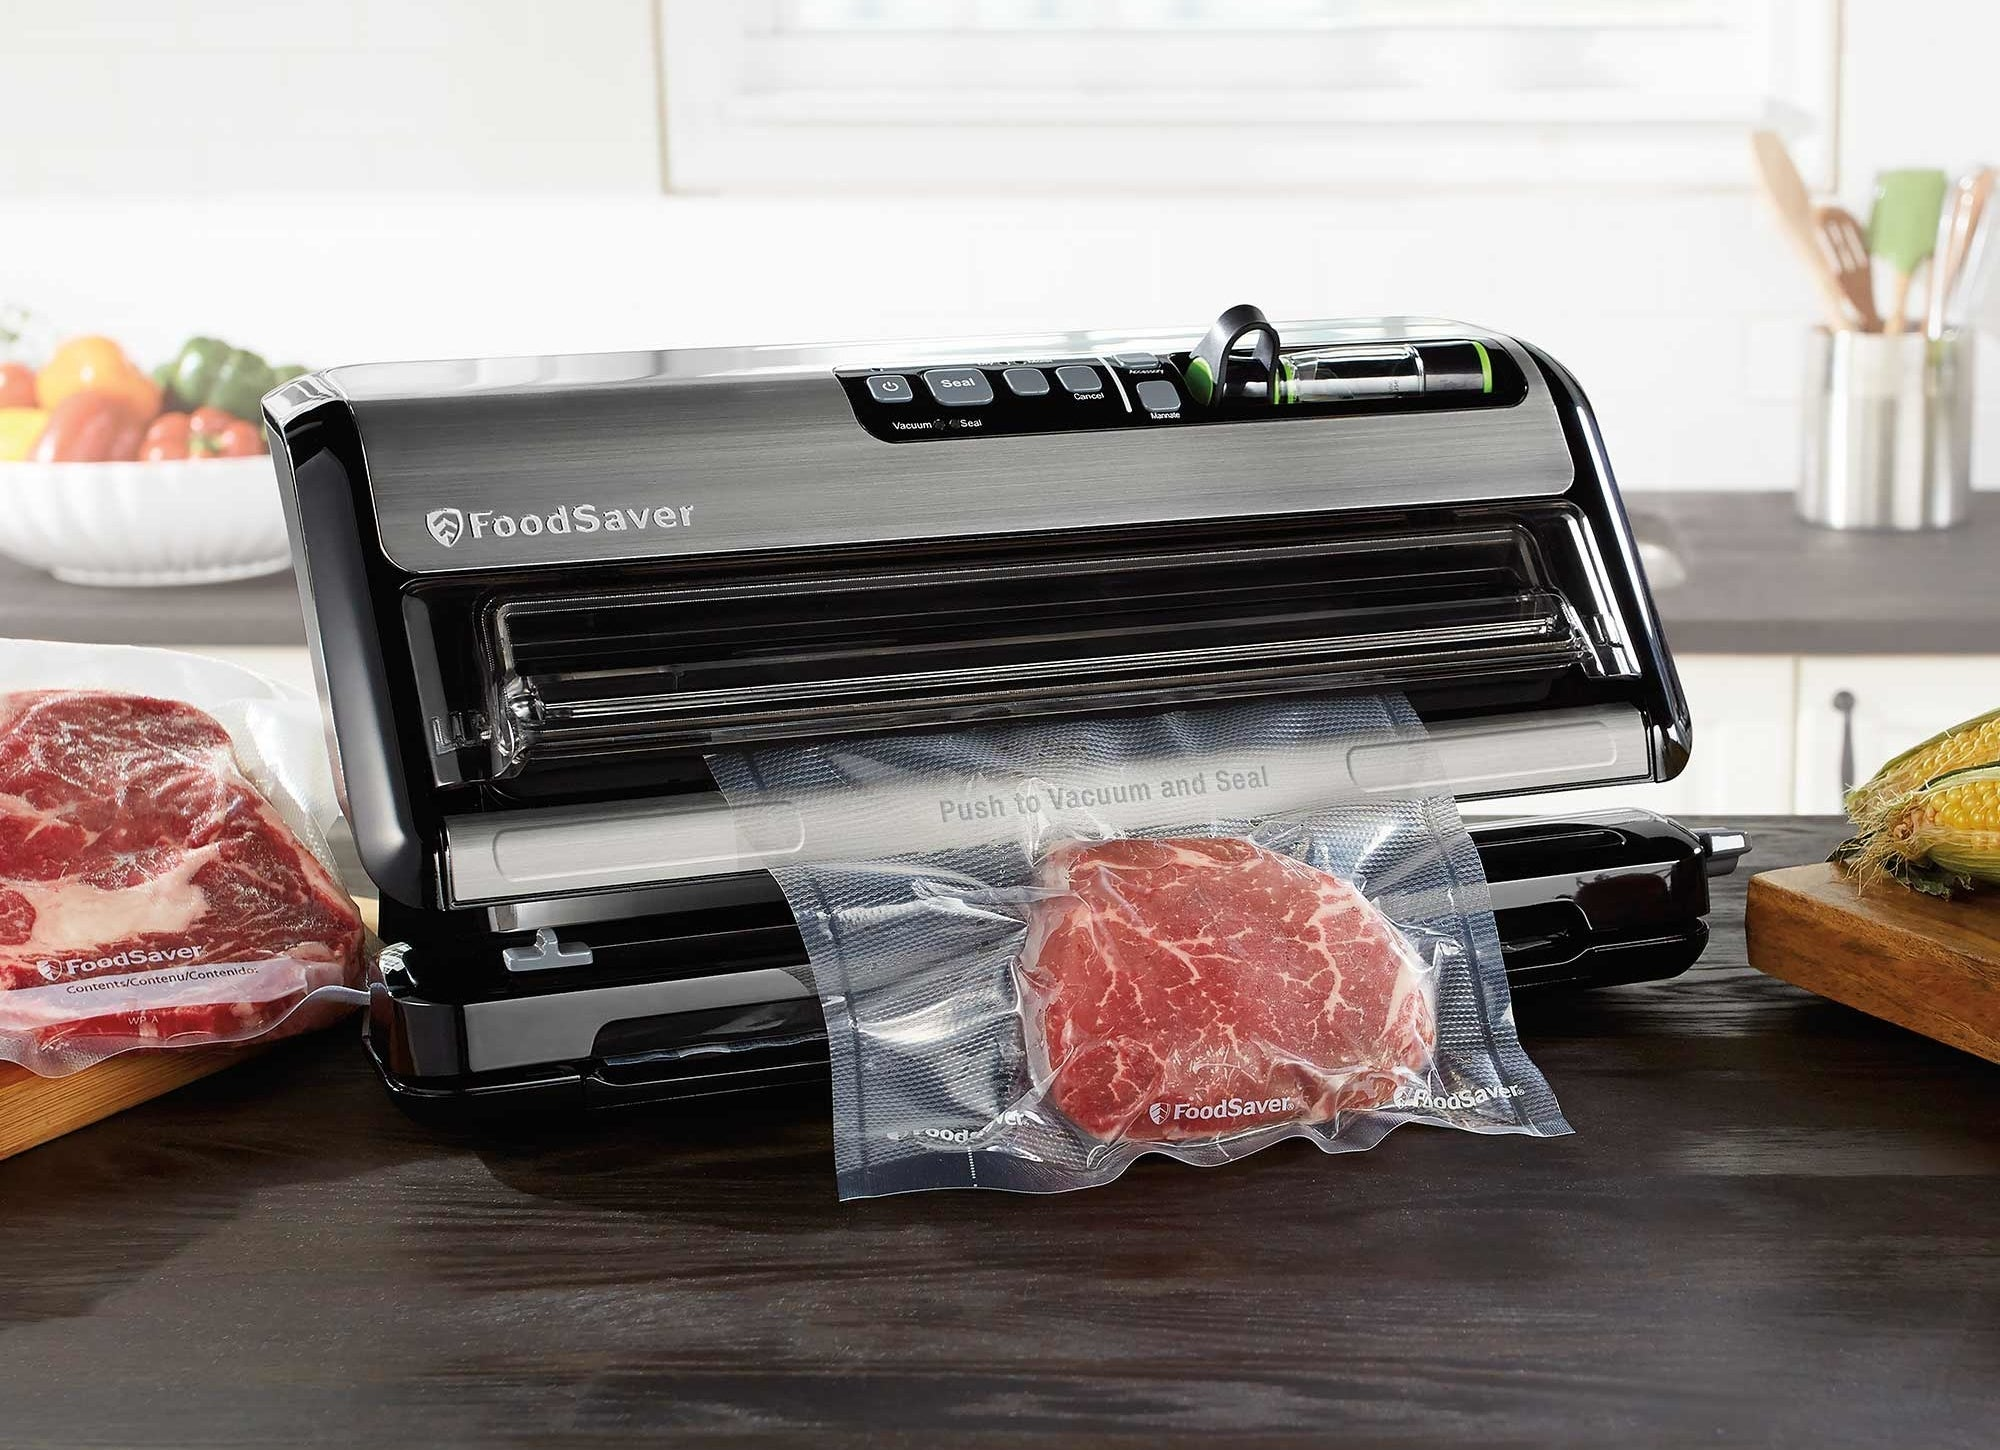 The vacuum sealer, sealing up some meat